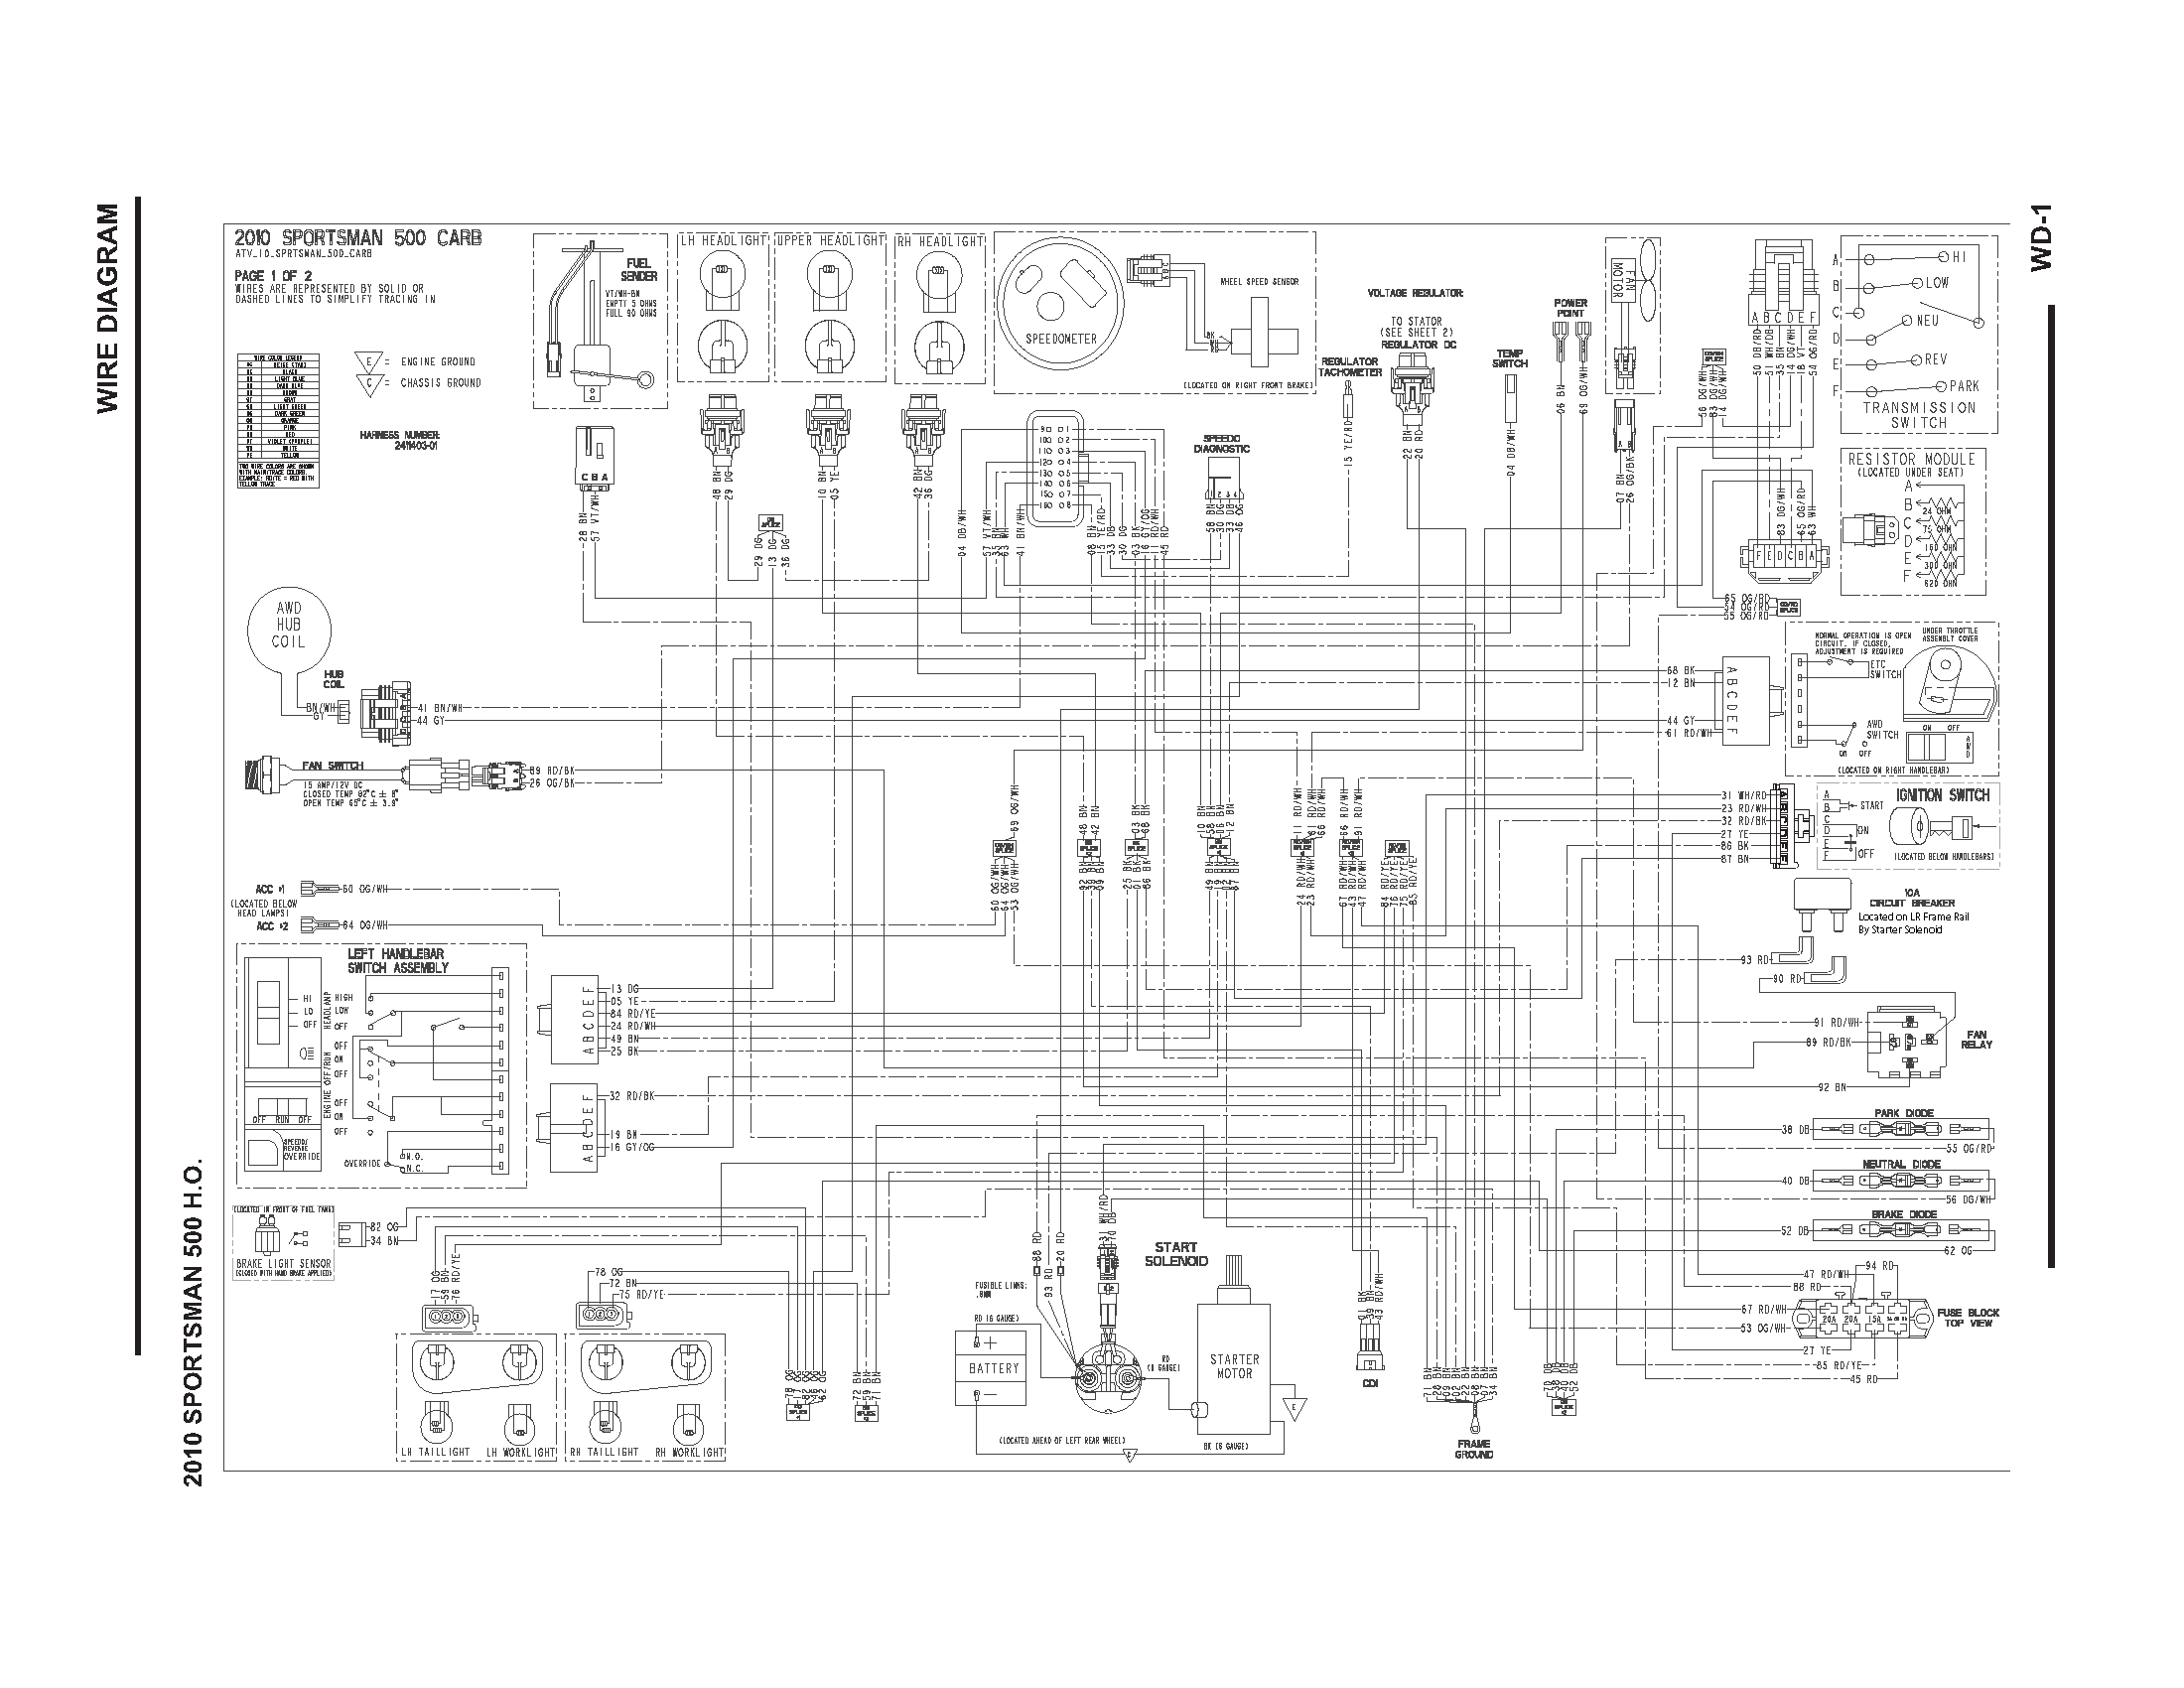 2010 polaris sportsman 500 wiring diagram polaris sportsman 500 wiring diagram electric scooter schematic #15